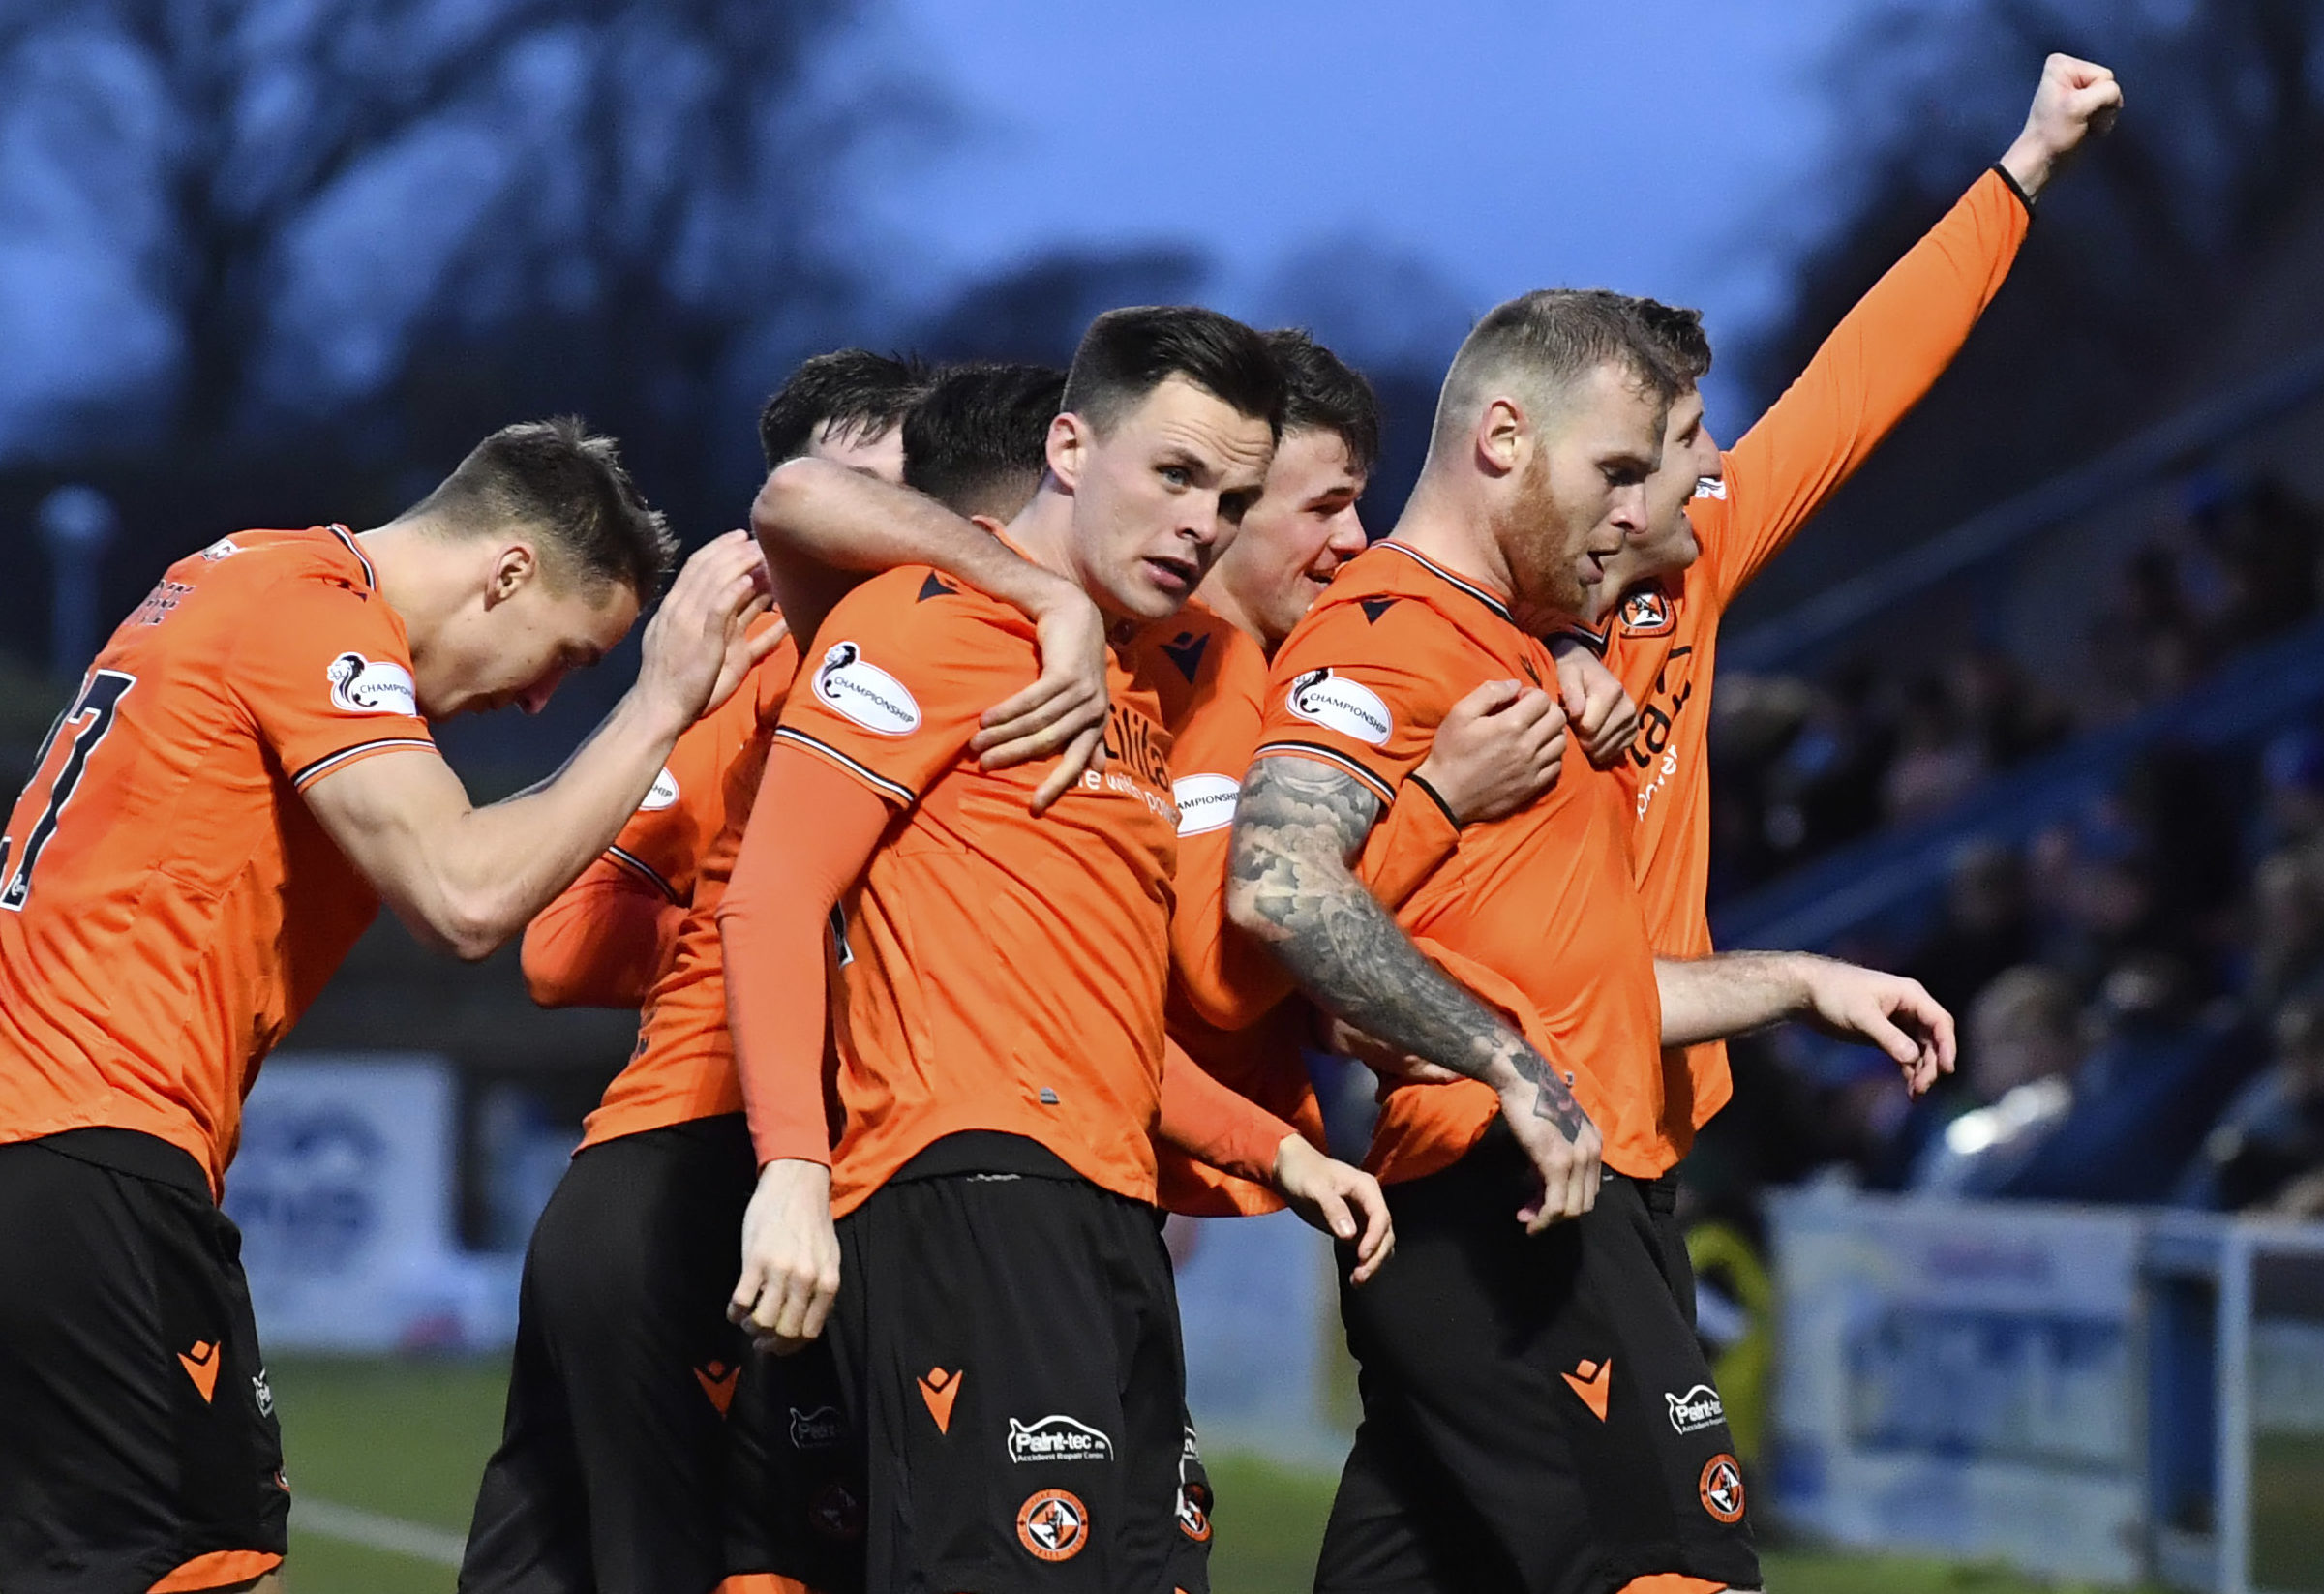 The United players celebrate with Mark Connolly.